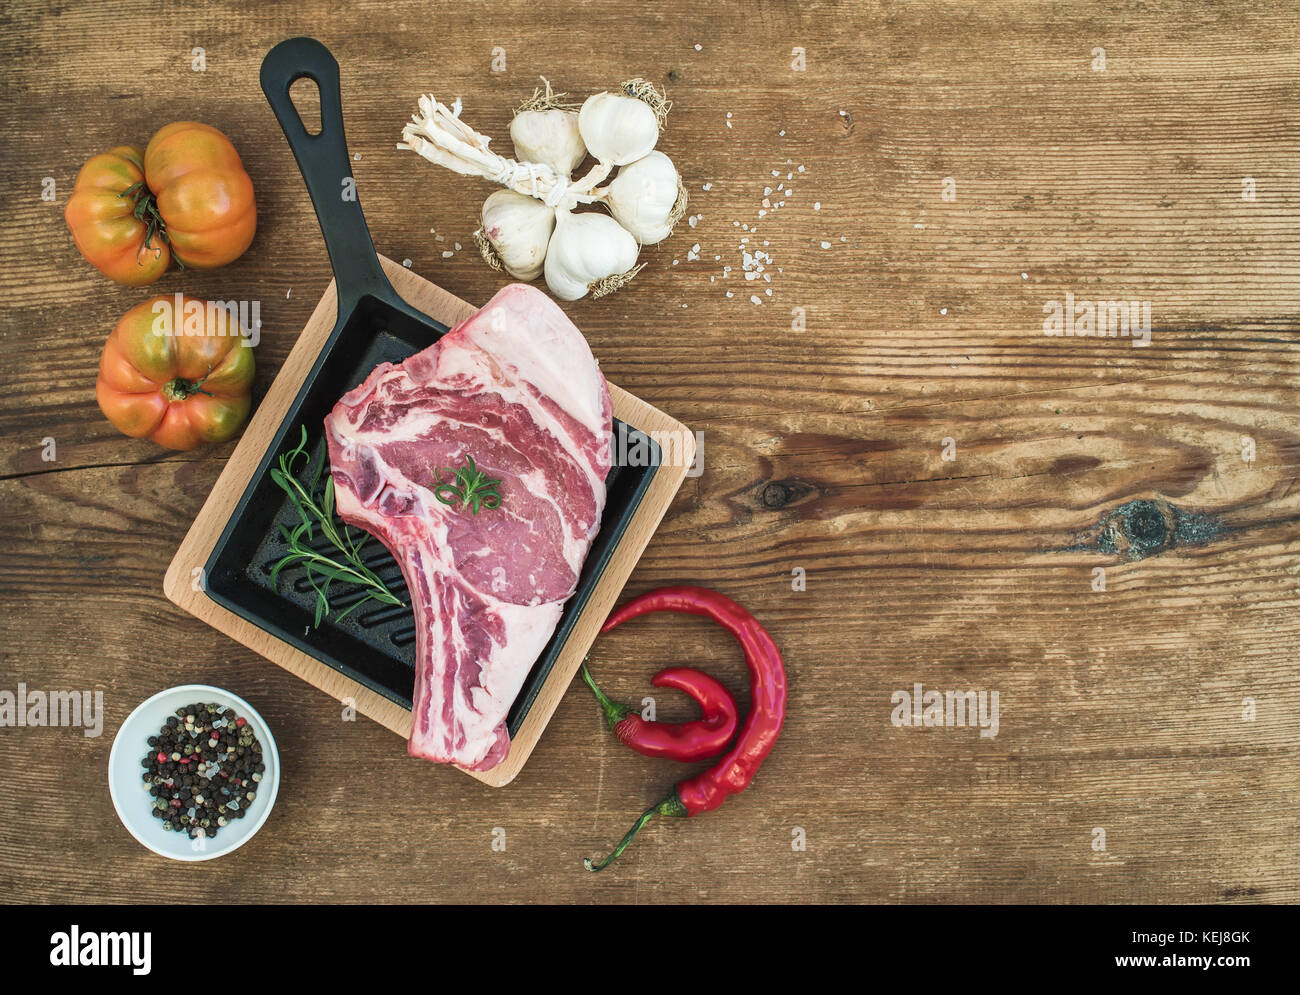 Raw fresh meat ribeye steak with pepper, salt, chili, garlic, heirloom tomatoes and rosemary in cooking pan over - Stock Image